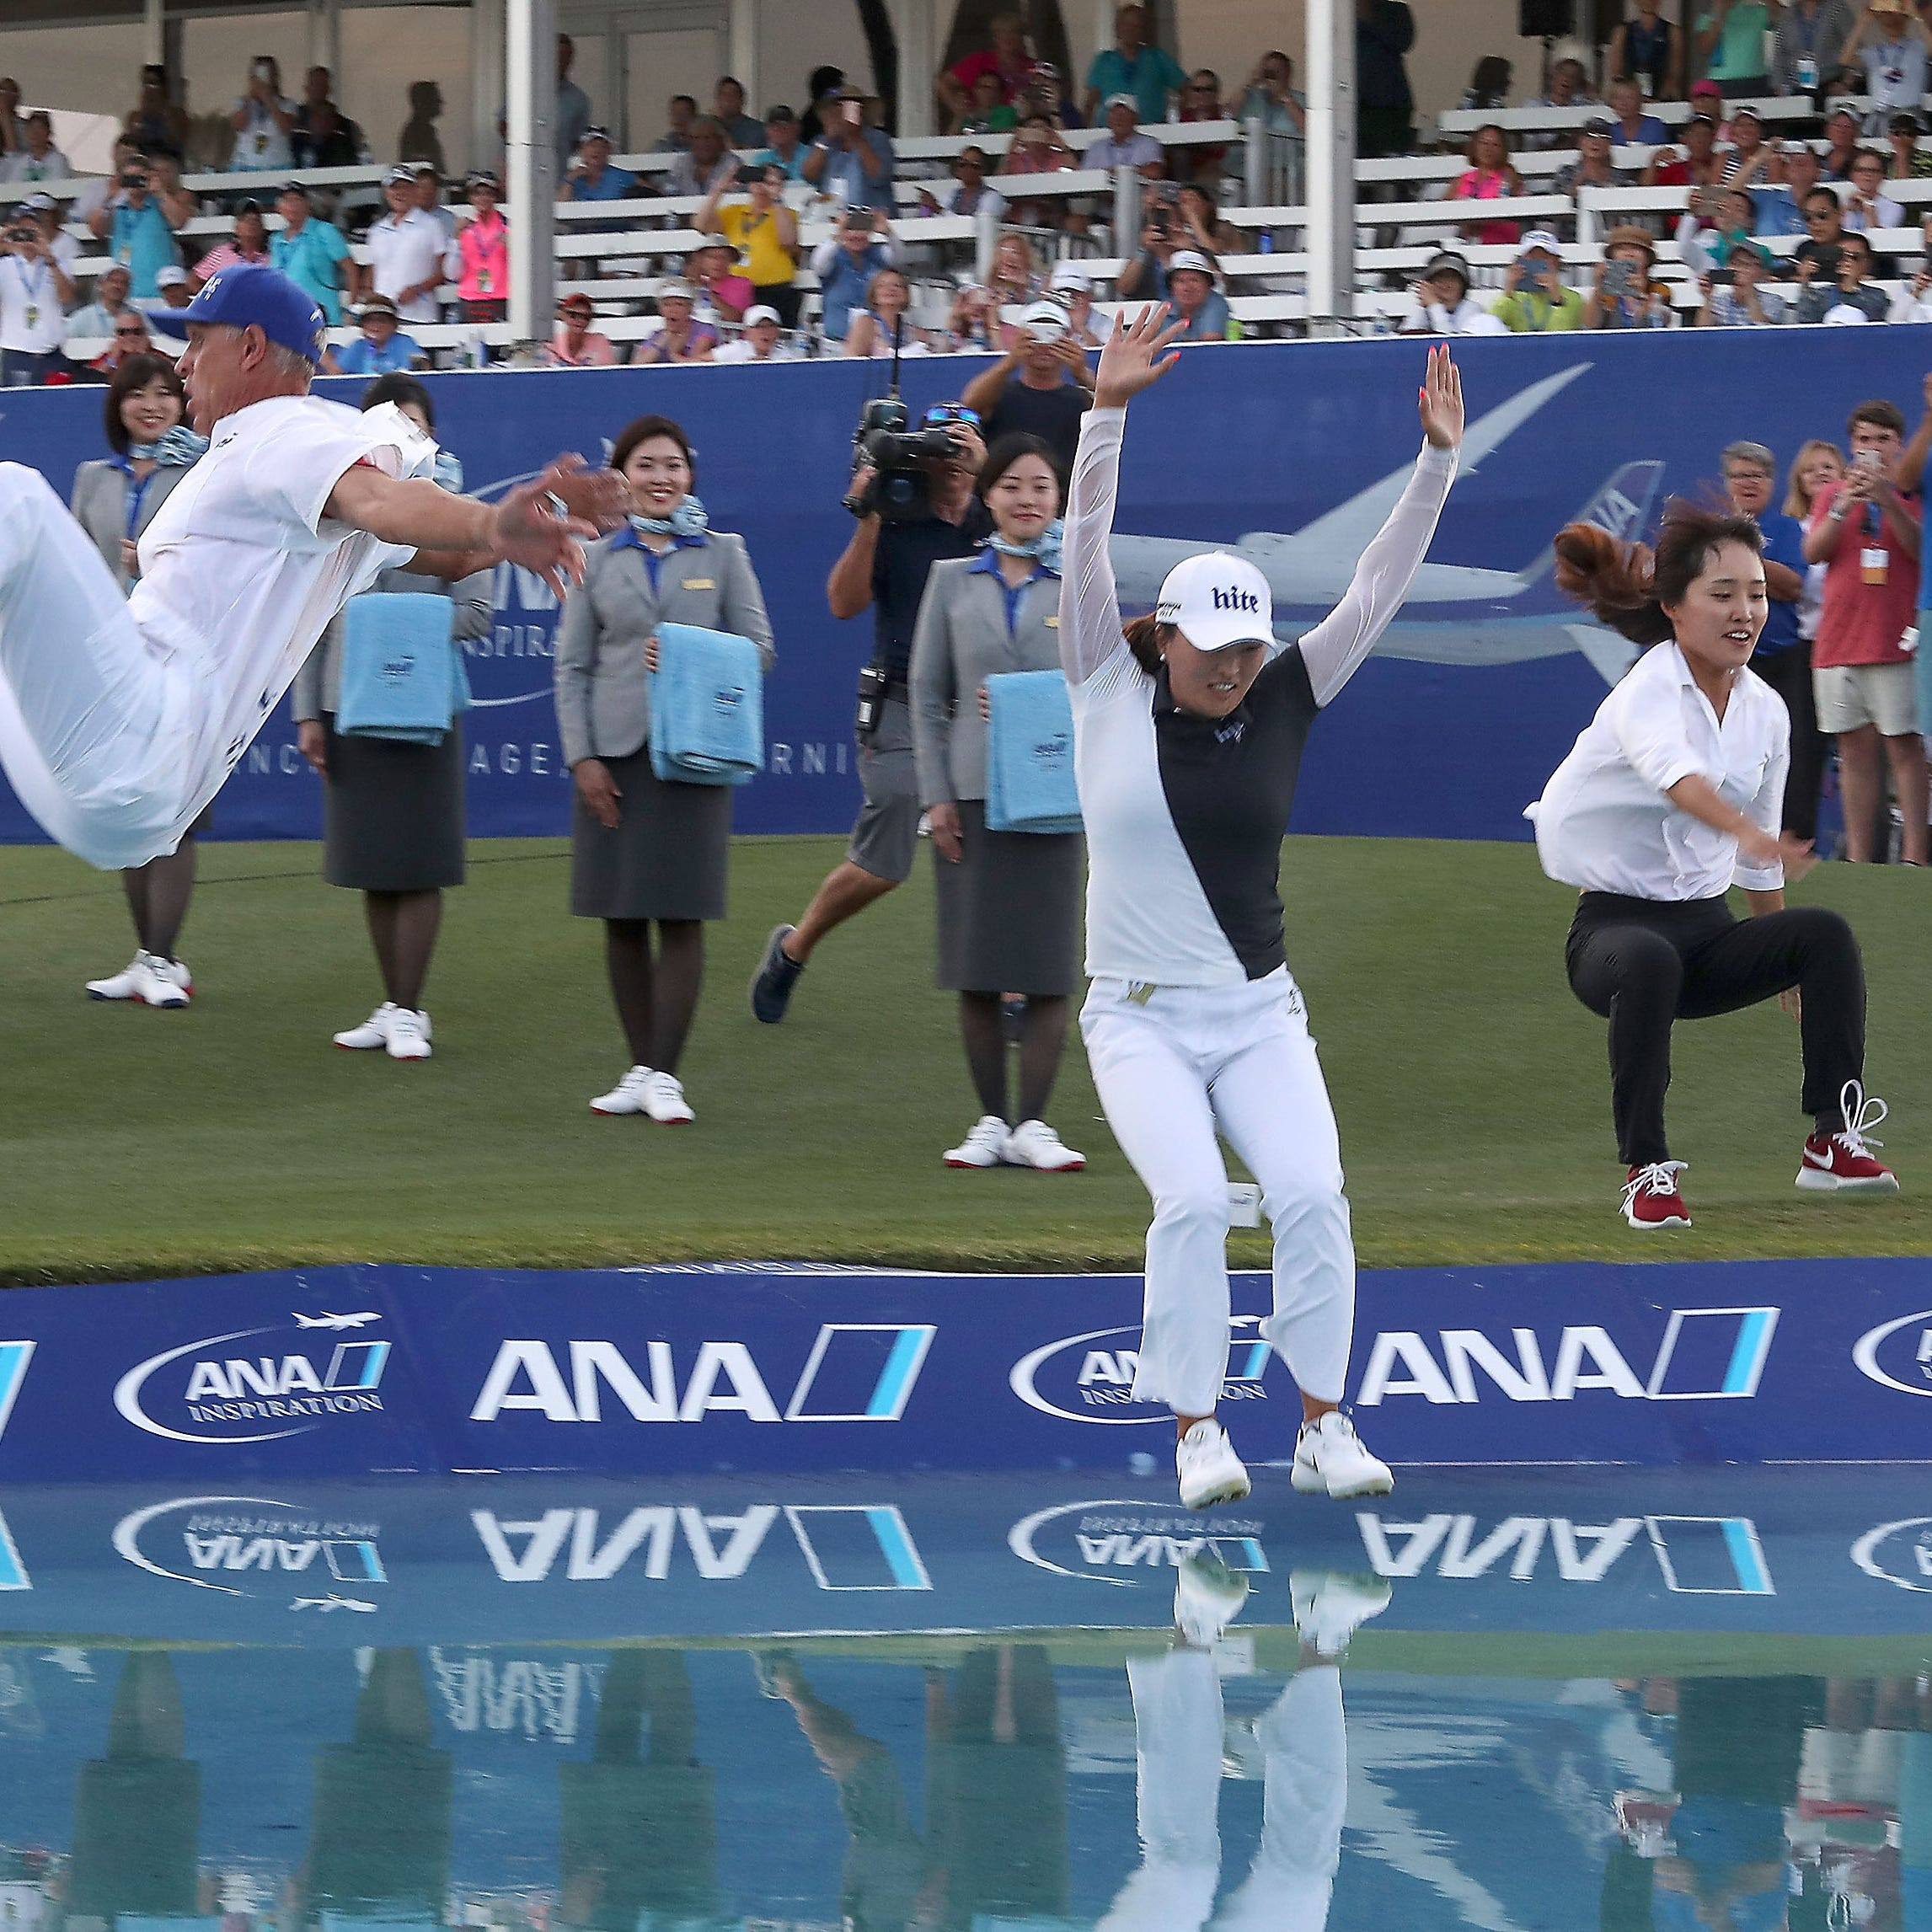 Smaller crowds, Augusta conflict among reasons ANA Inspiration looking for date change